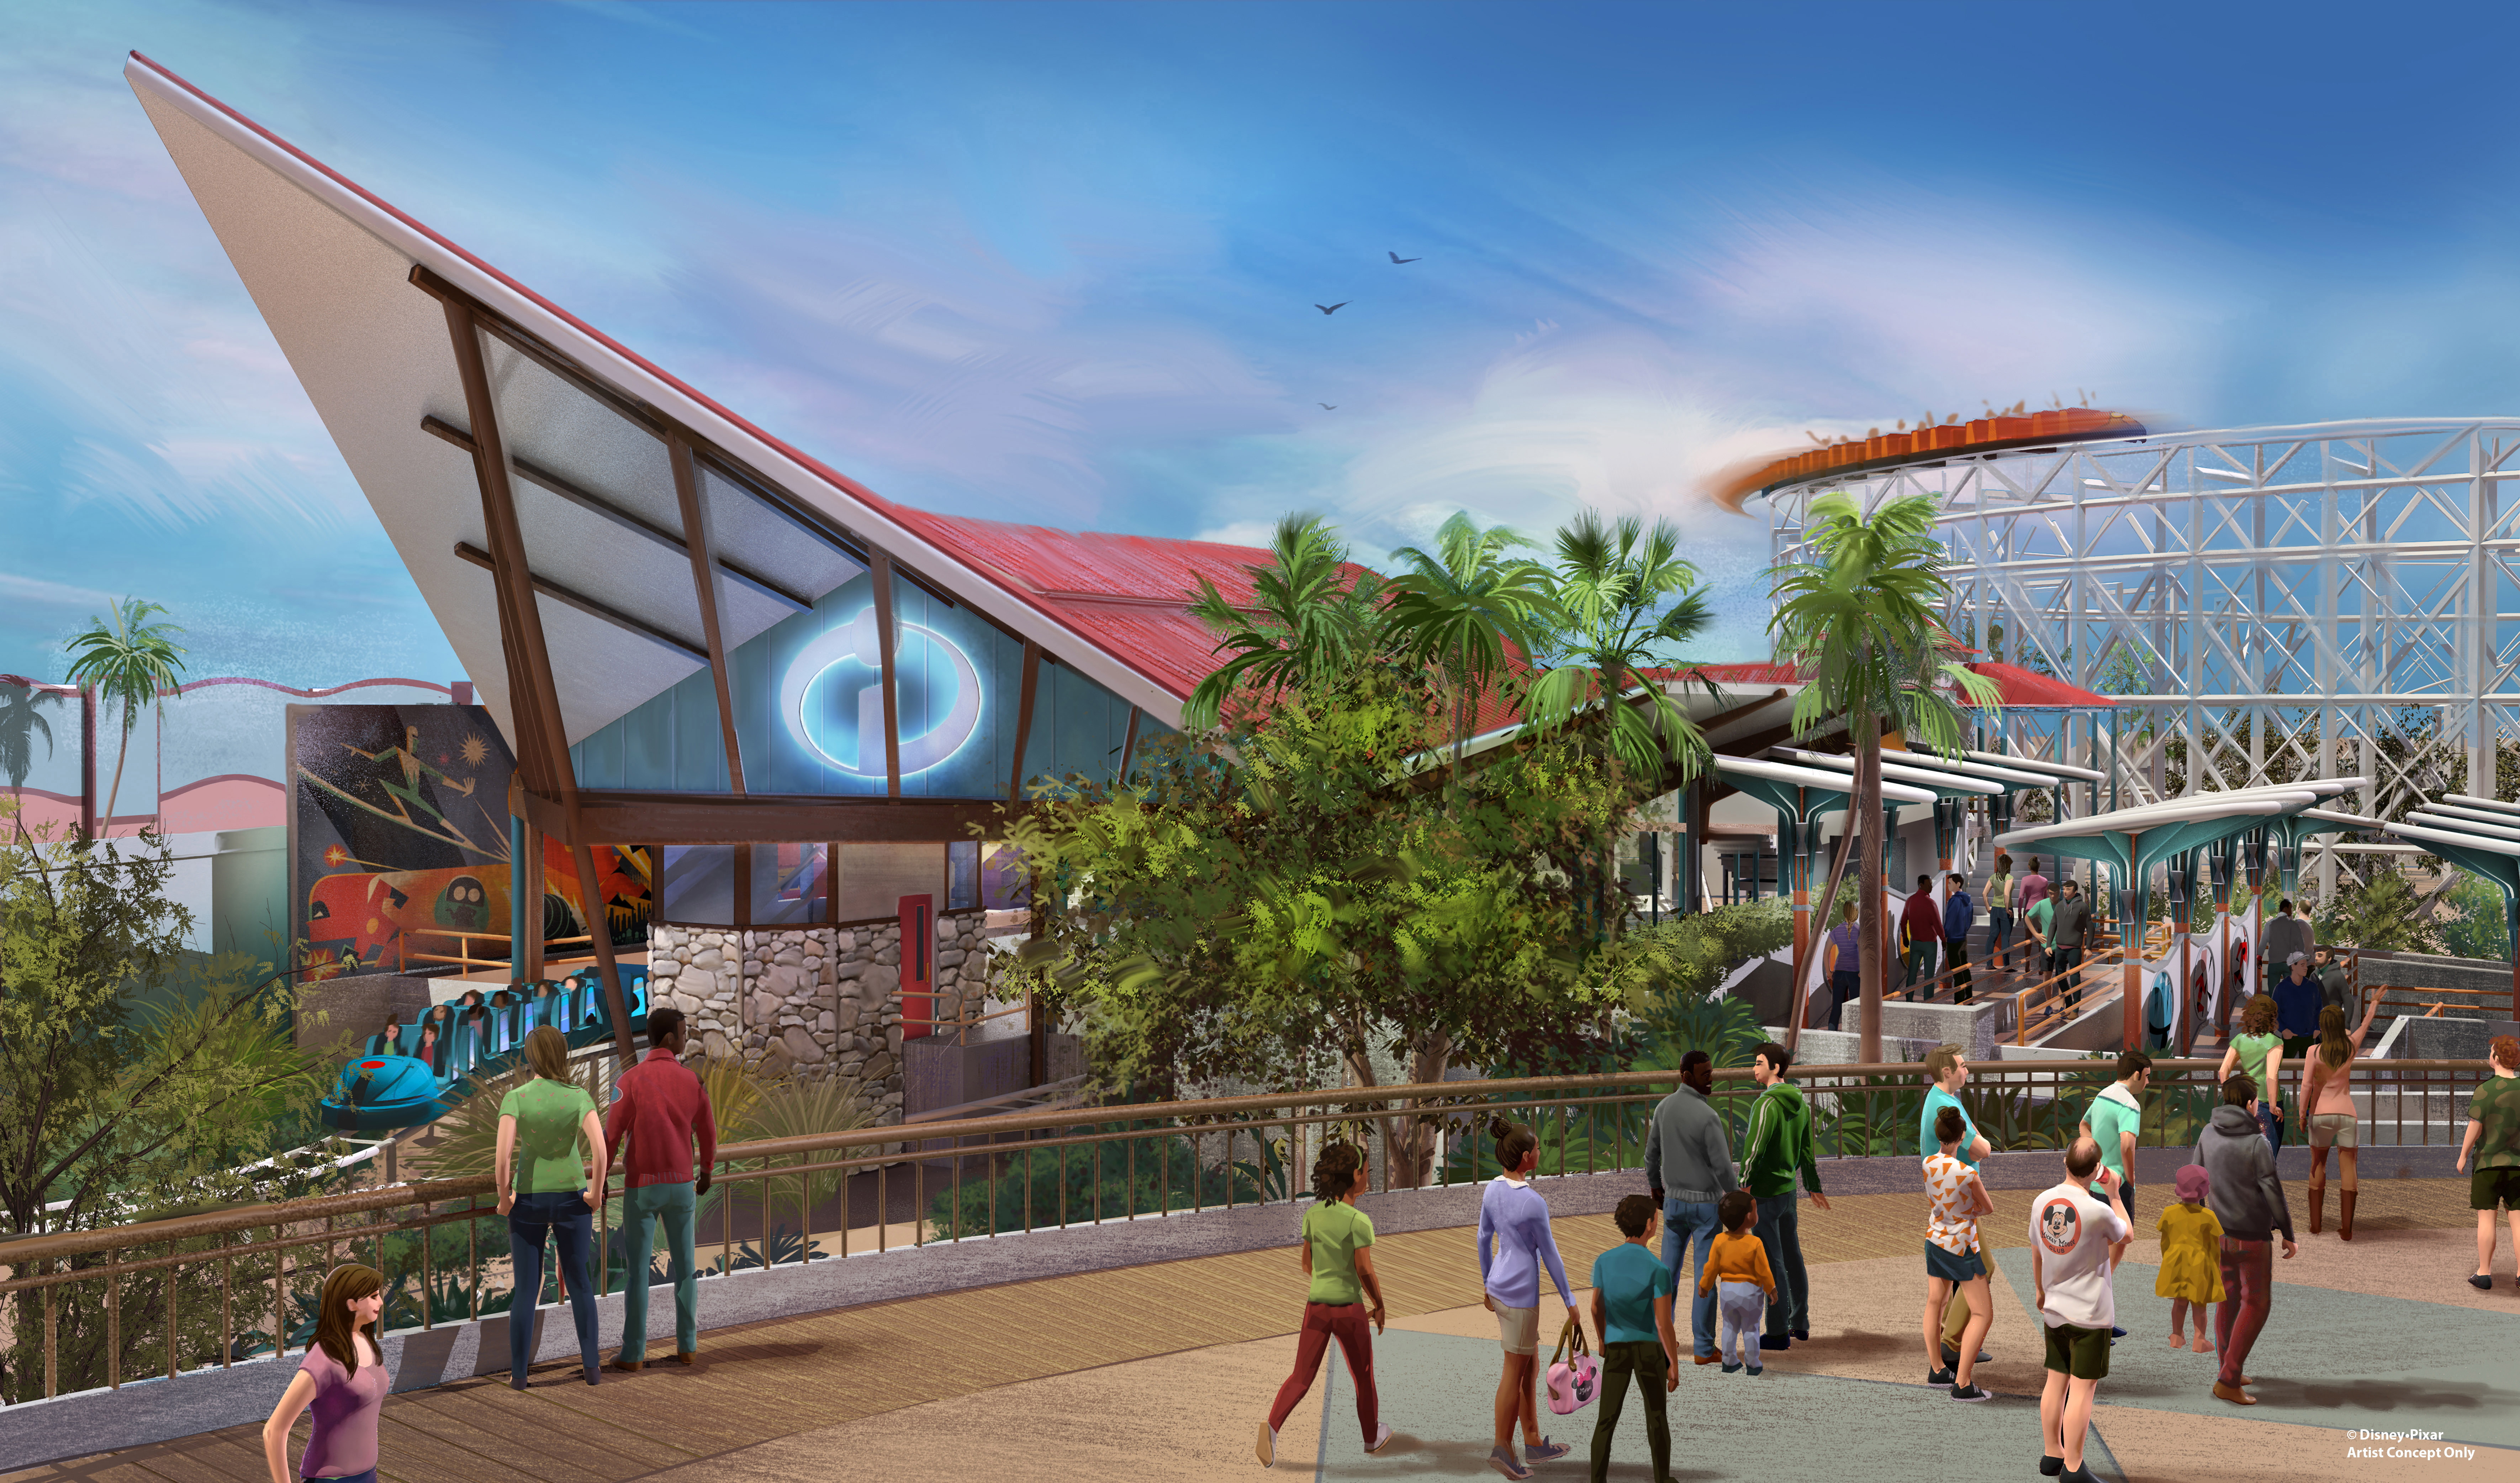 Mouseplanet disneyland resort update for november 6 november 12 the incredicoaster is a new permanent makeover for california screamin photo disney publicscrutiny Images